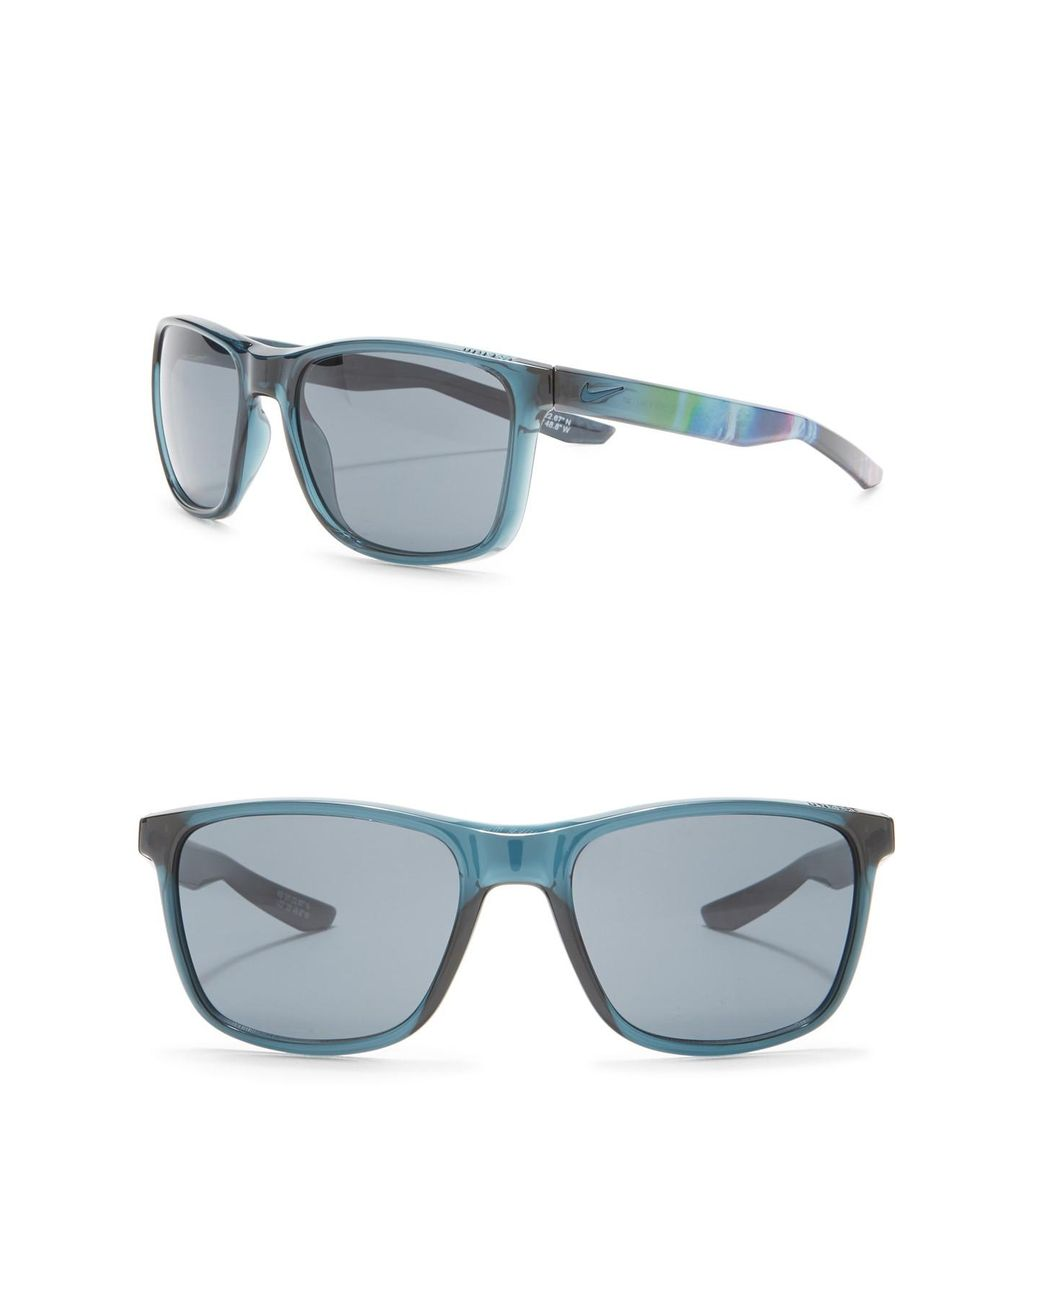 03a8a1911a Lyst - Nike Unrest 57mm Square Sunglasses in Blue for Men